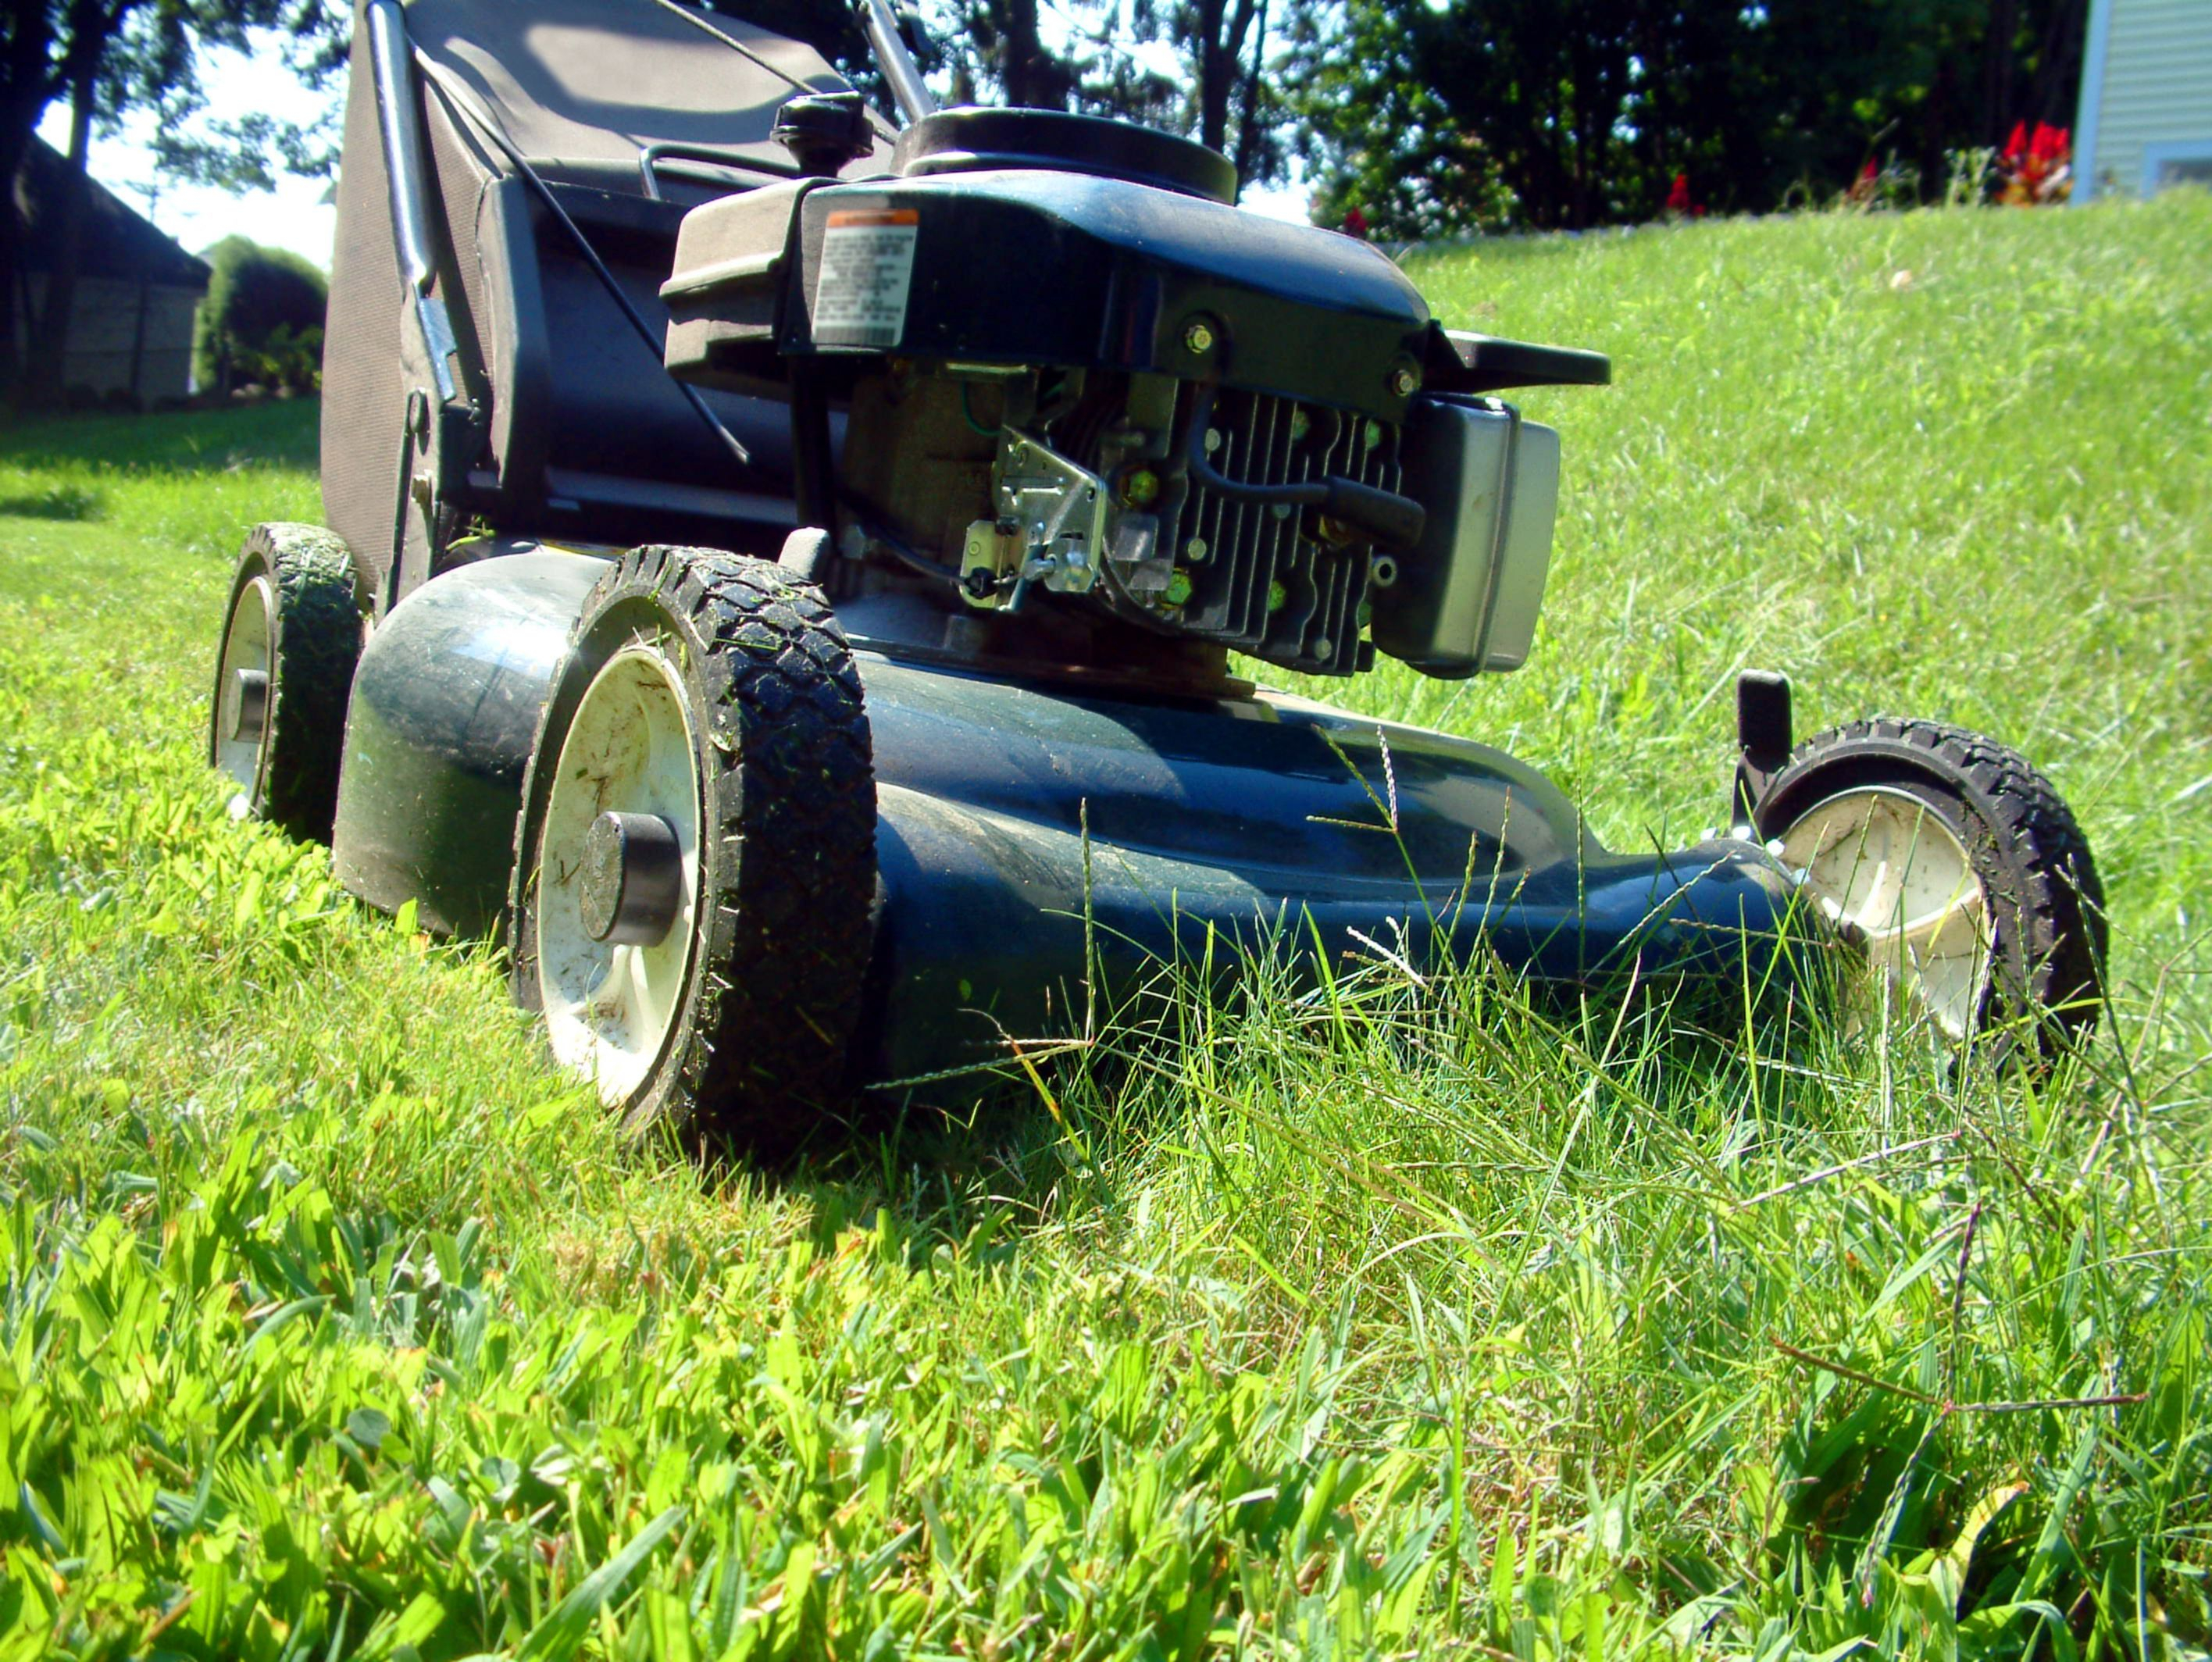 Four cycle engine lawn mower maintenance adding oil for Best motor oil for lawn mowers